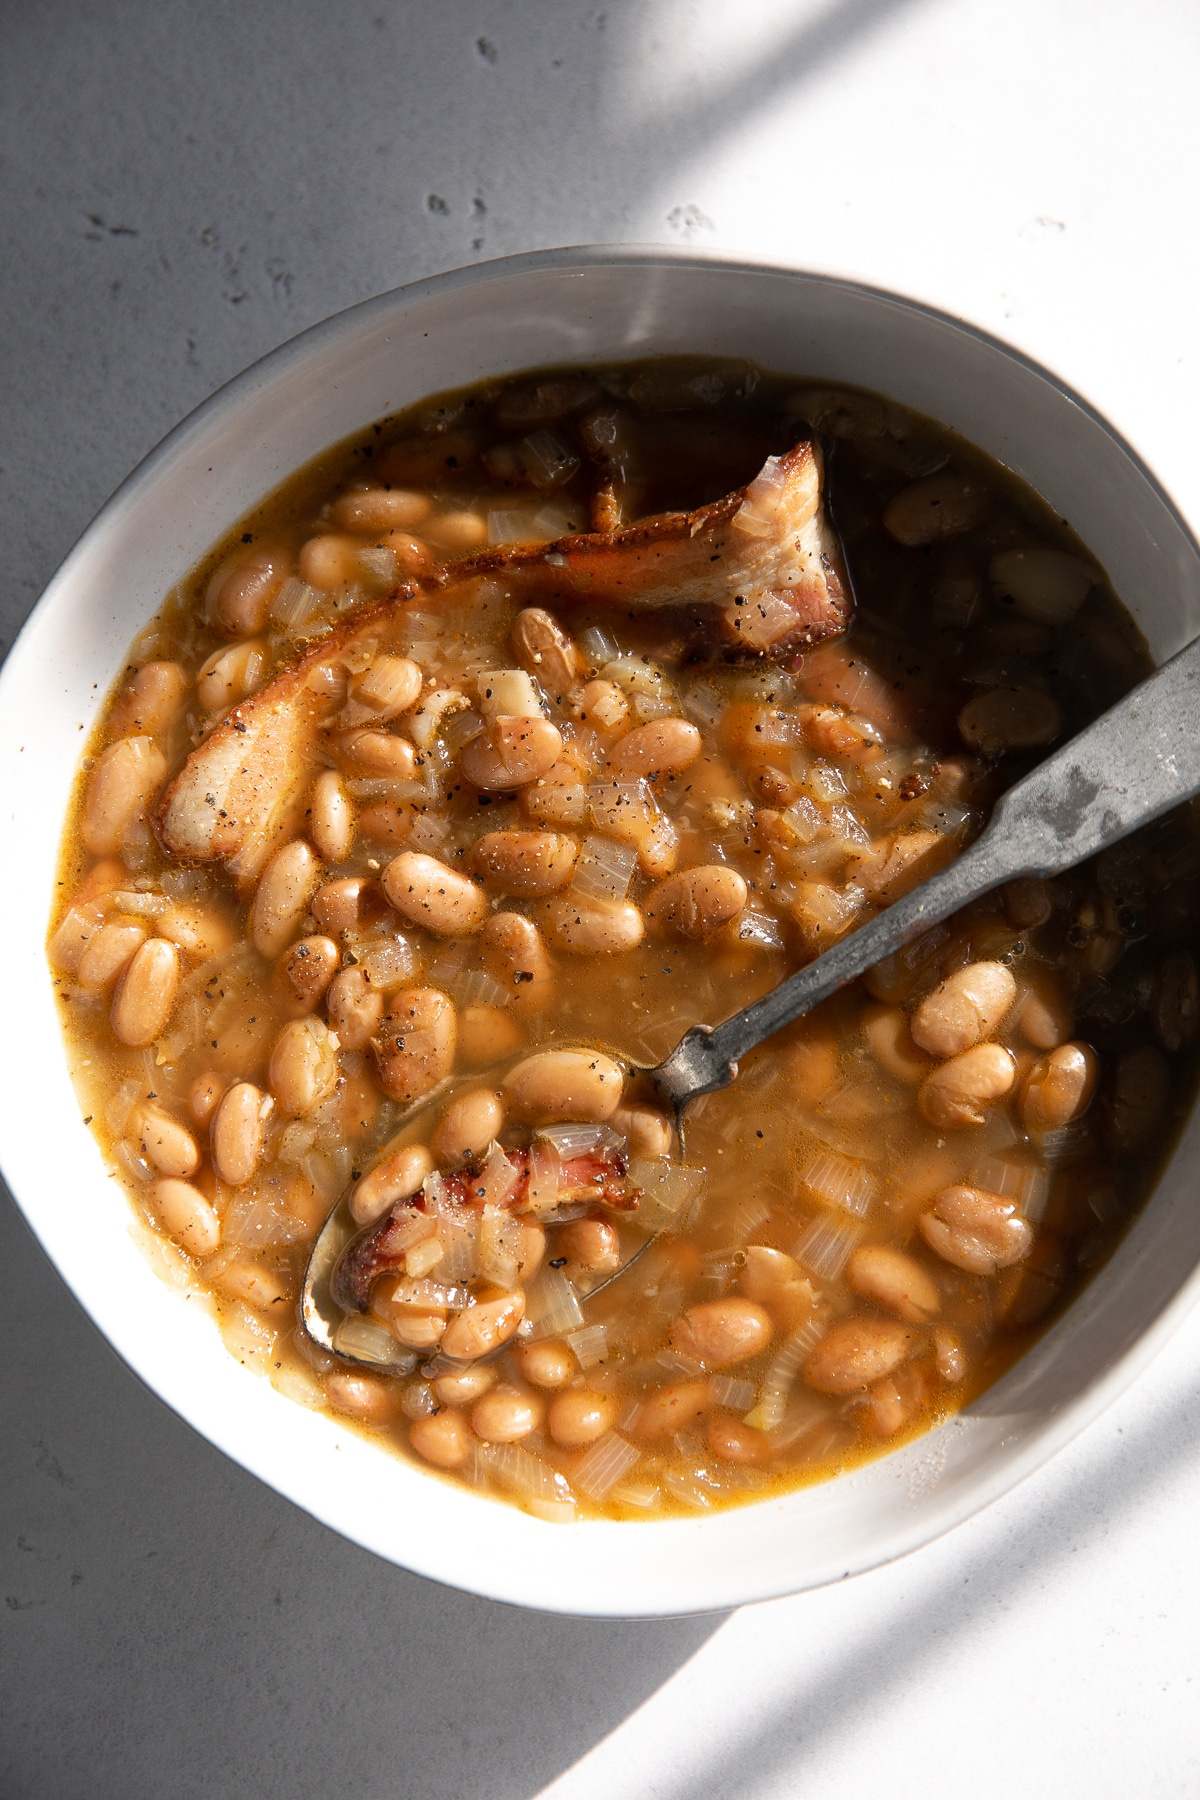 Image of cooked pinto beans with onions and bacon in a light broth.